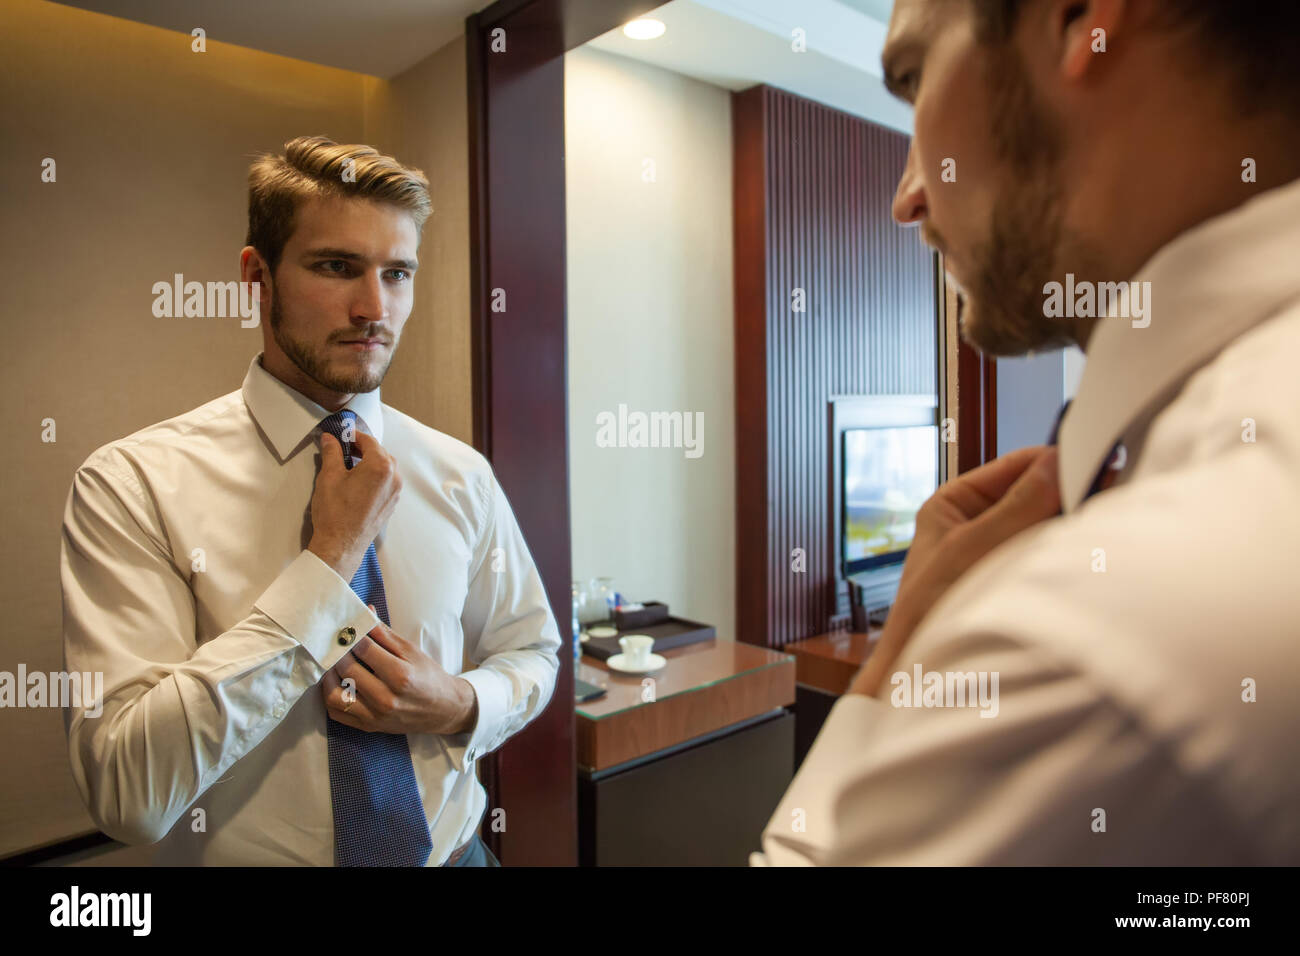 People, business,fashion and clothing concept - close up of man in shirt dressing up and adjusting tie on neck at home. - Stock Image